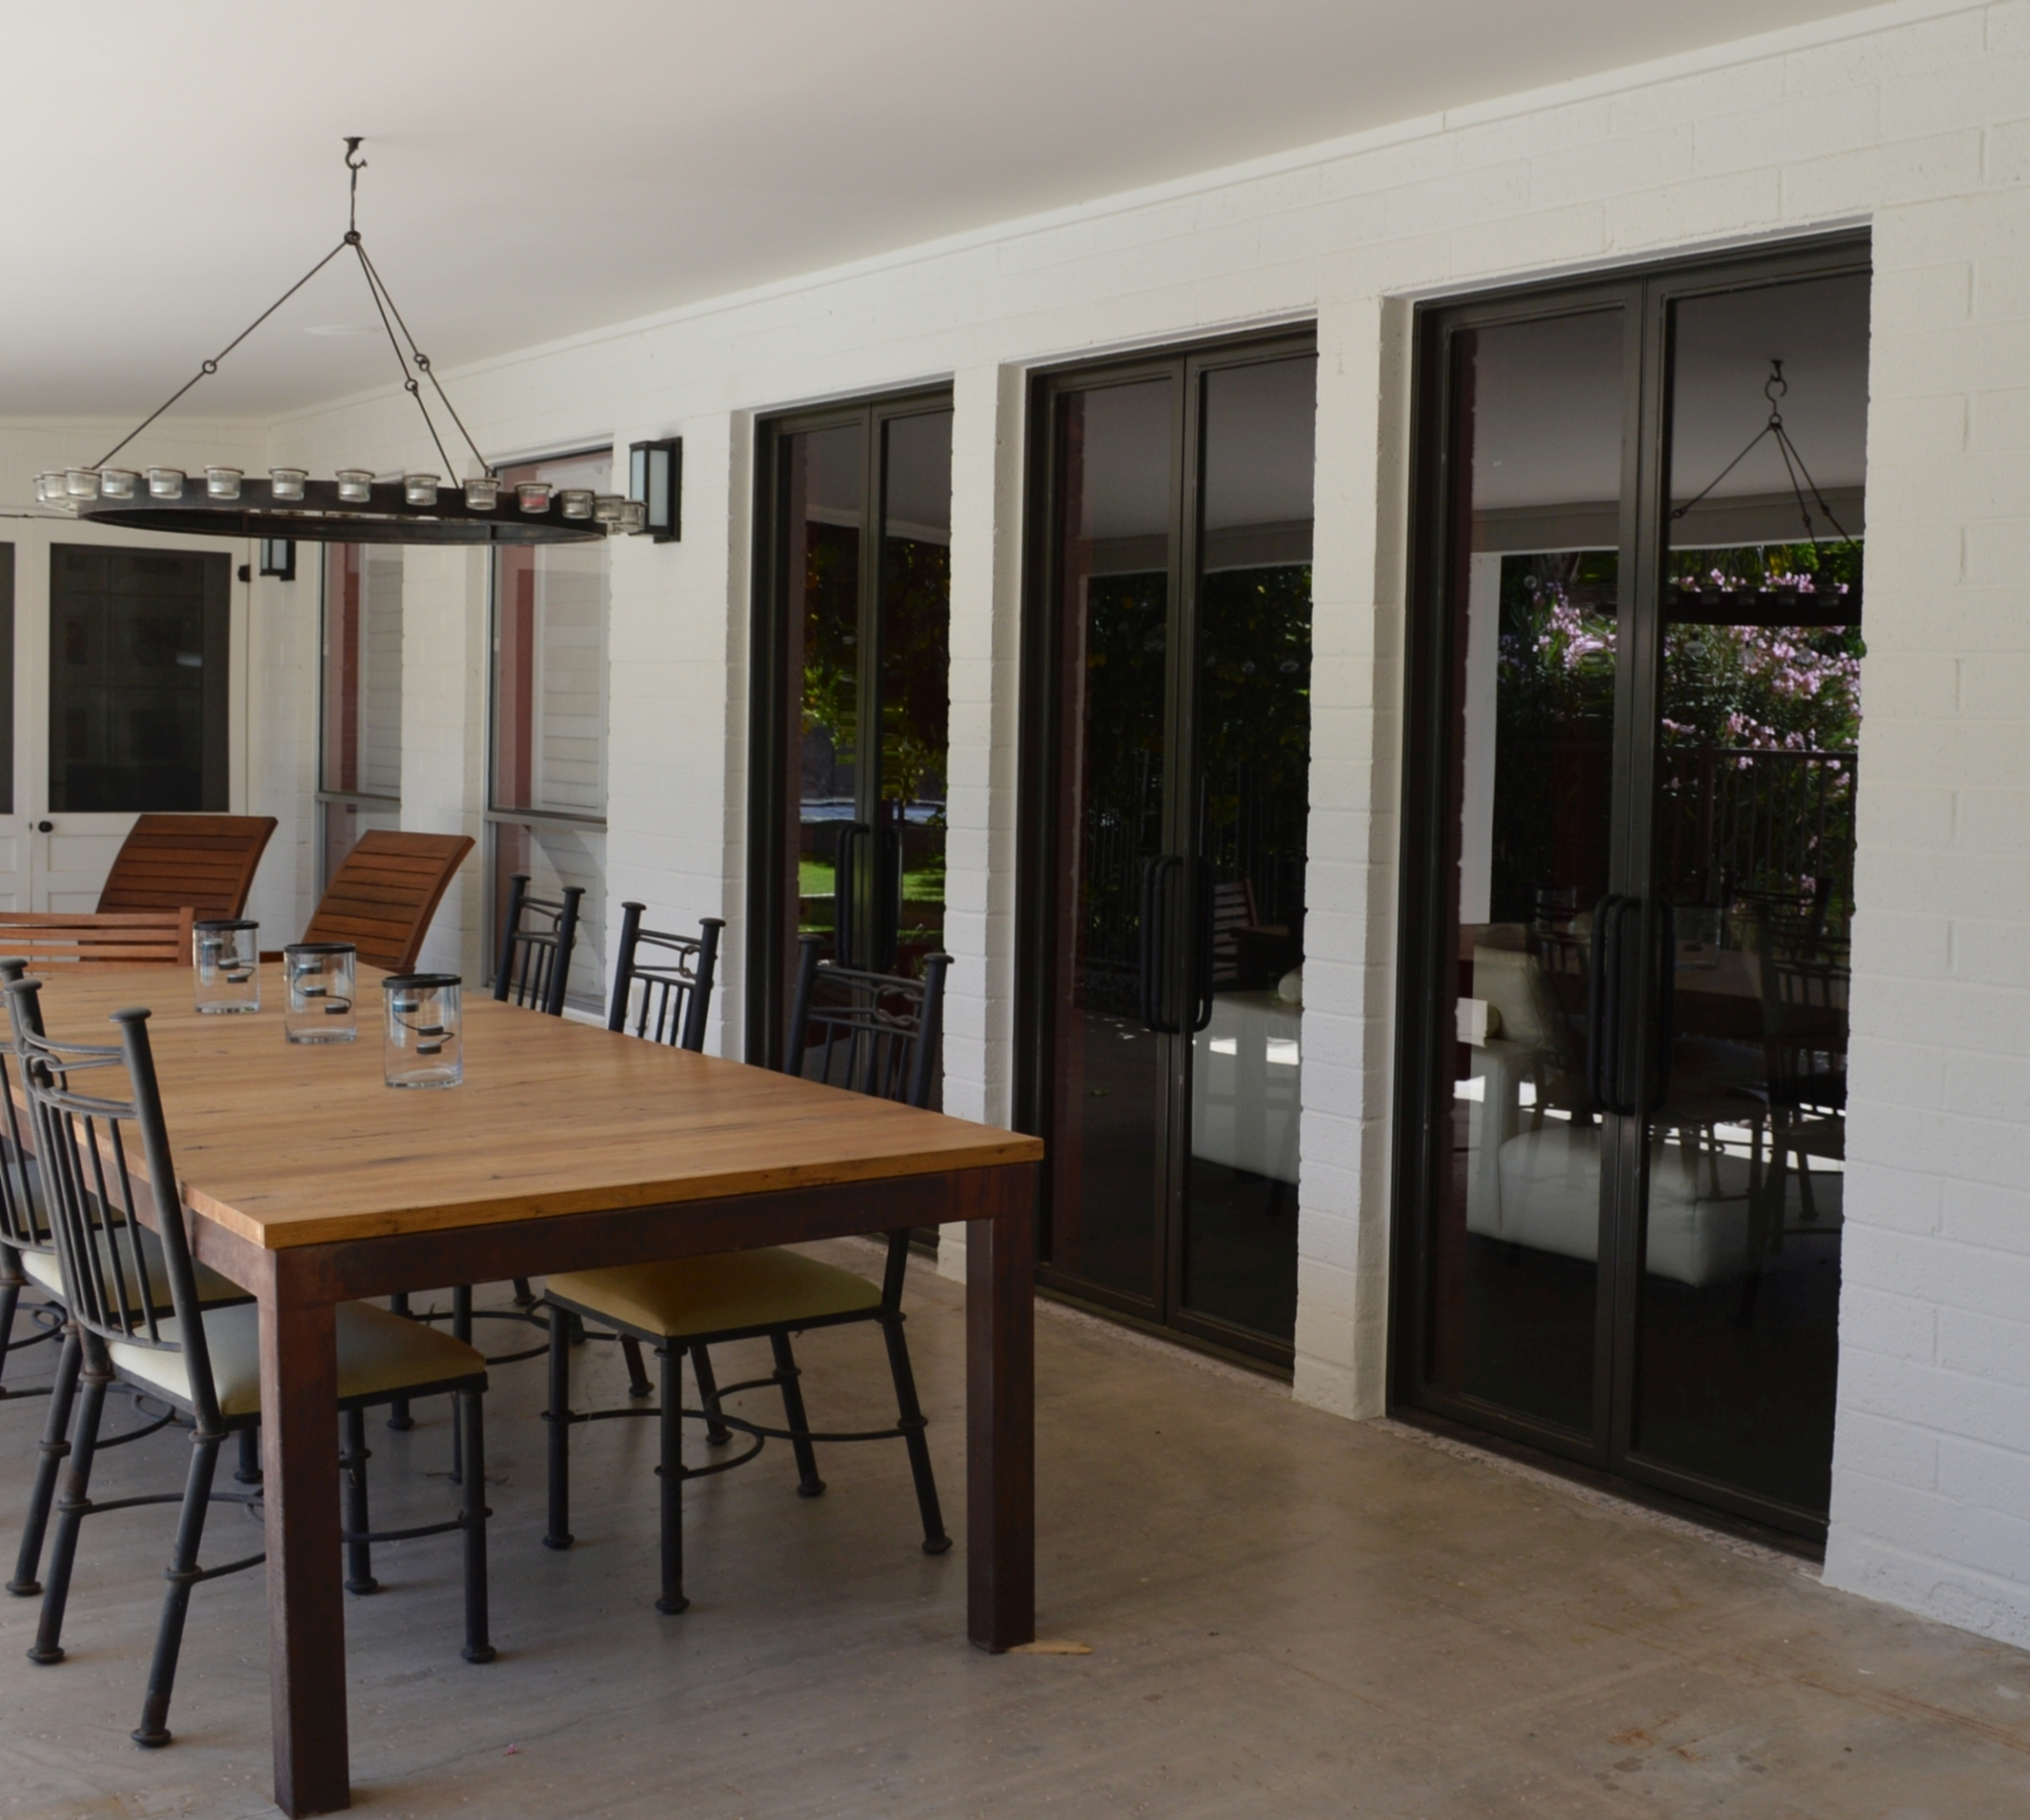 Custom patio doors to replace windows.